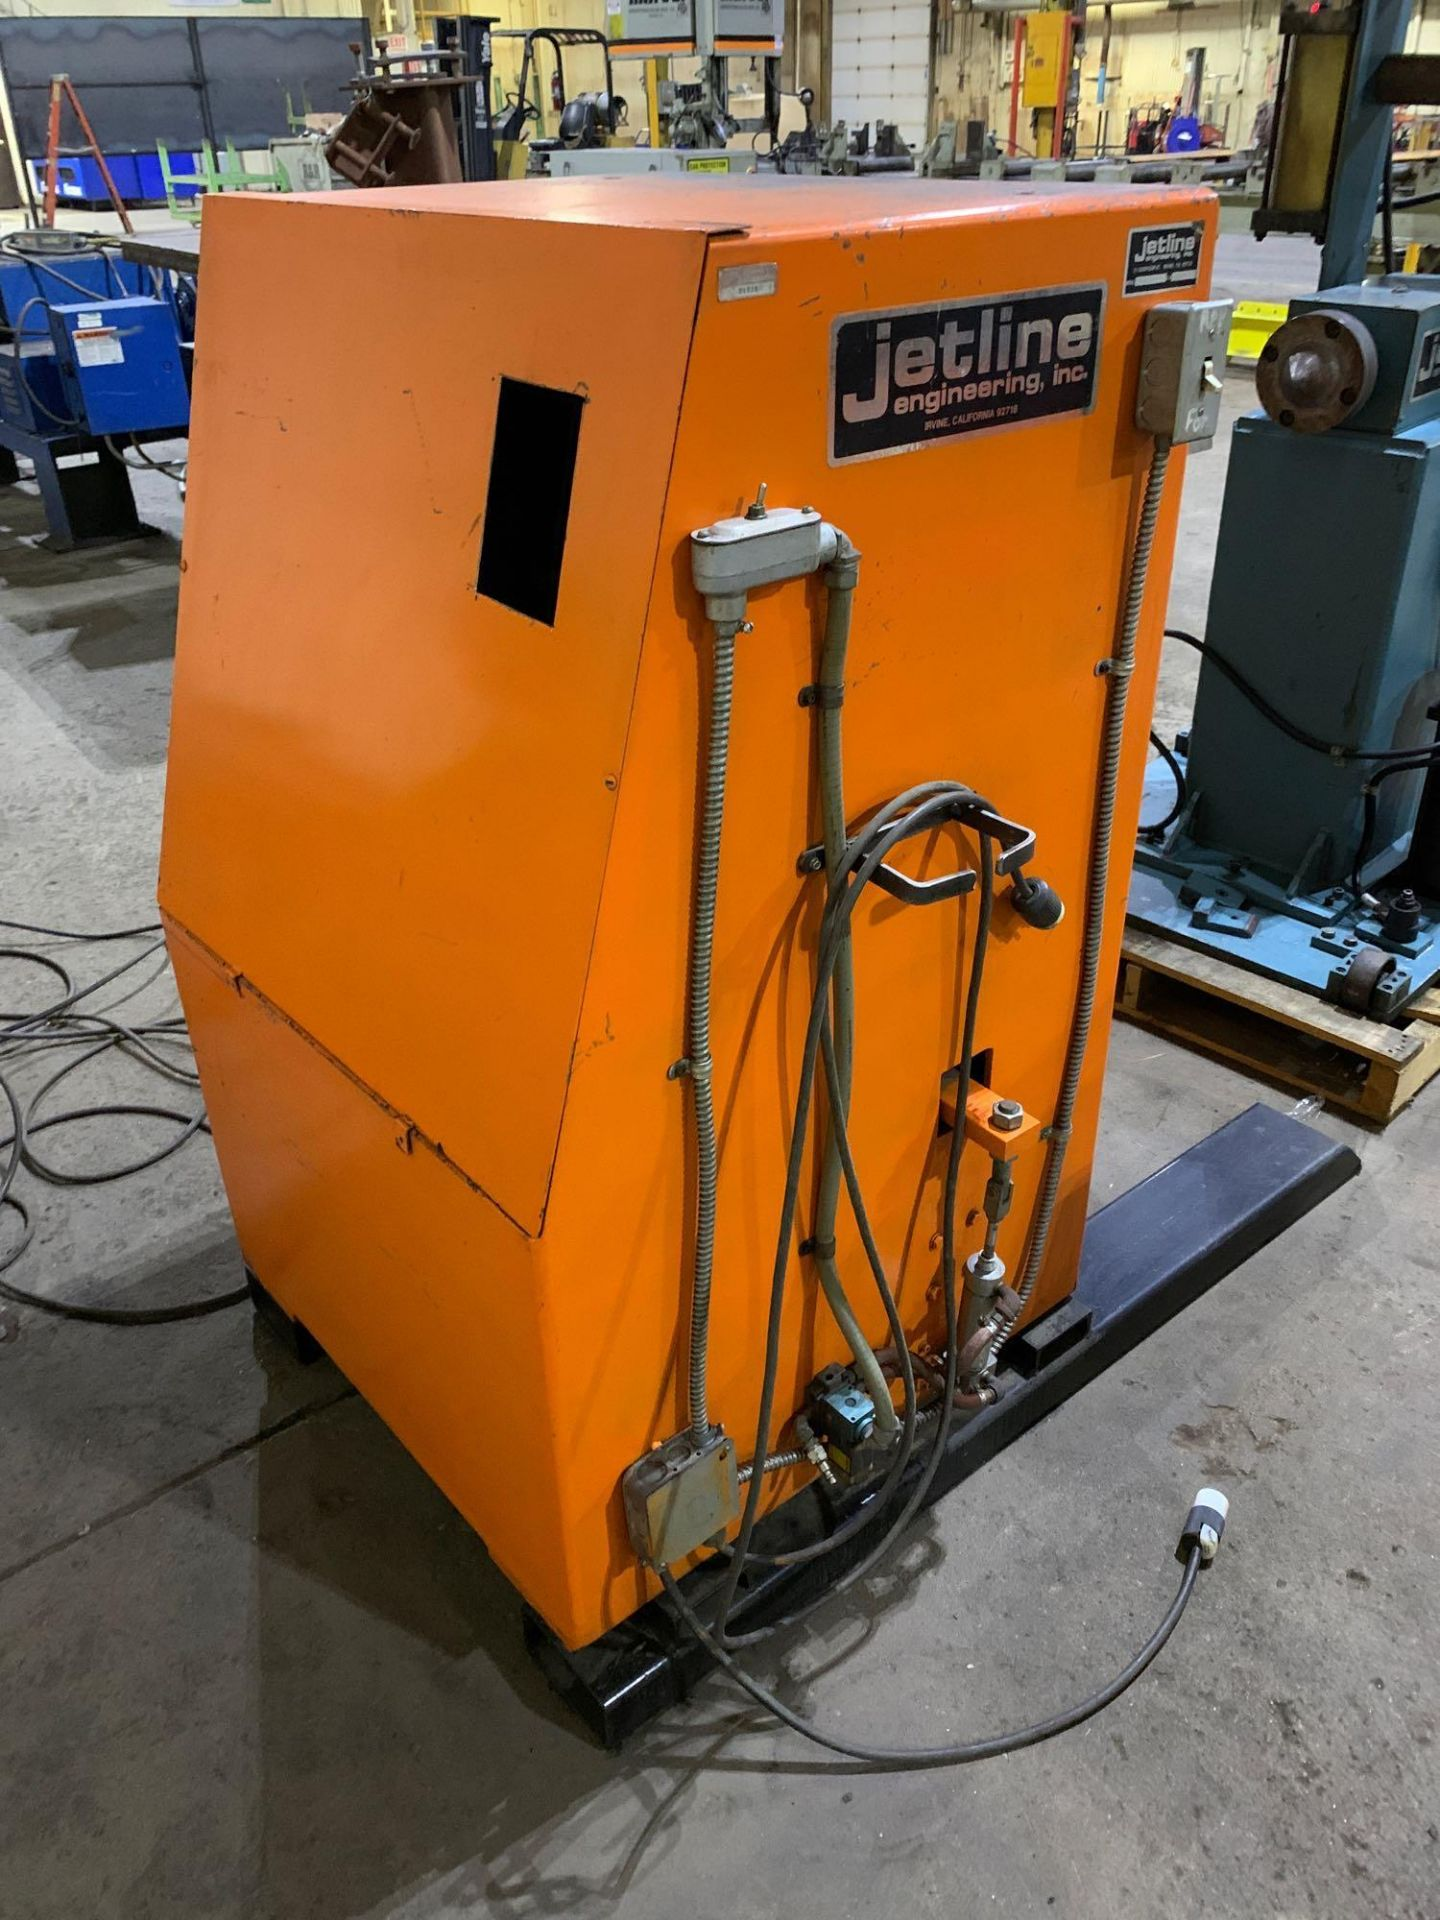 Jetline Welding Positioner Model CU5-216 Serial Number: 07625 Pipe Weld Positioner with Tail Stock I - Image 4 of 15